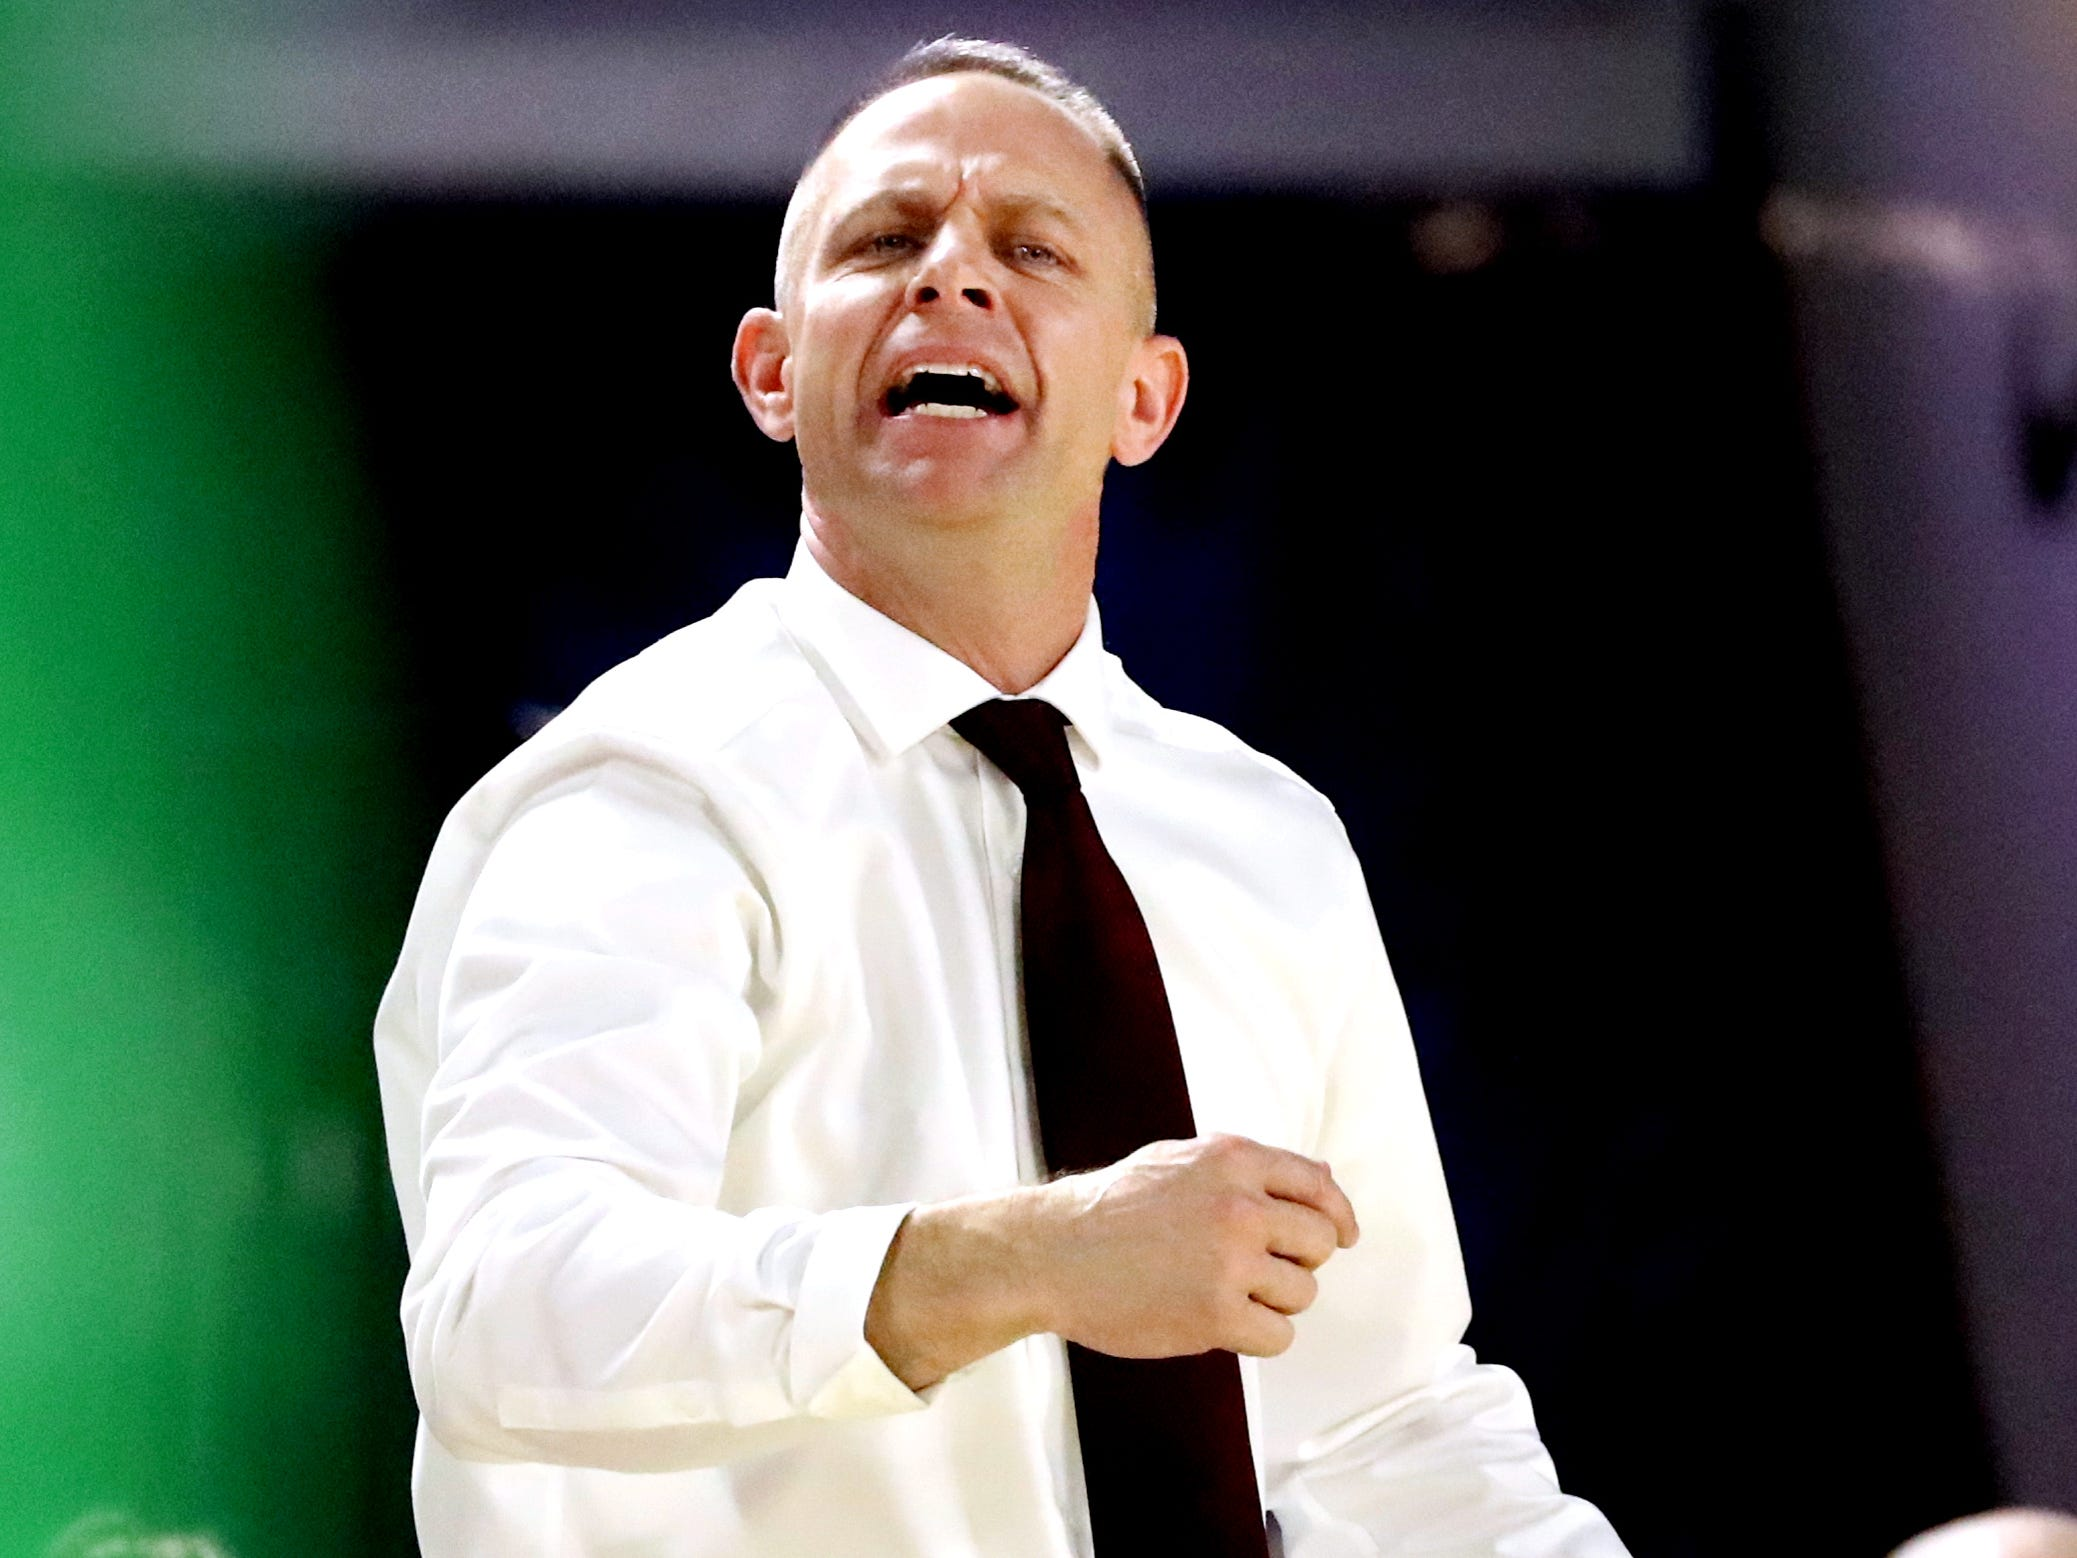 Eagleville's head coach Chris Lynch on the sidelines during the quarterfinal round of the TSSAA Div. 1 Class A Girls State Tournament against Midway, on Thursday, March 7, 2019, at Murphy Center in Murfreesboro, Tenn.